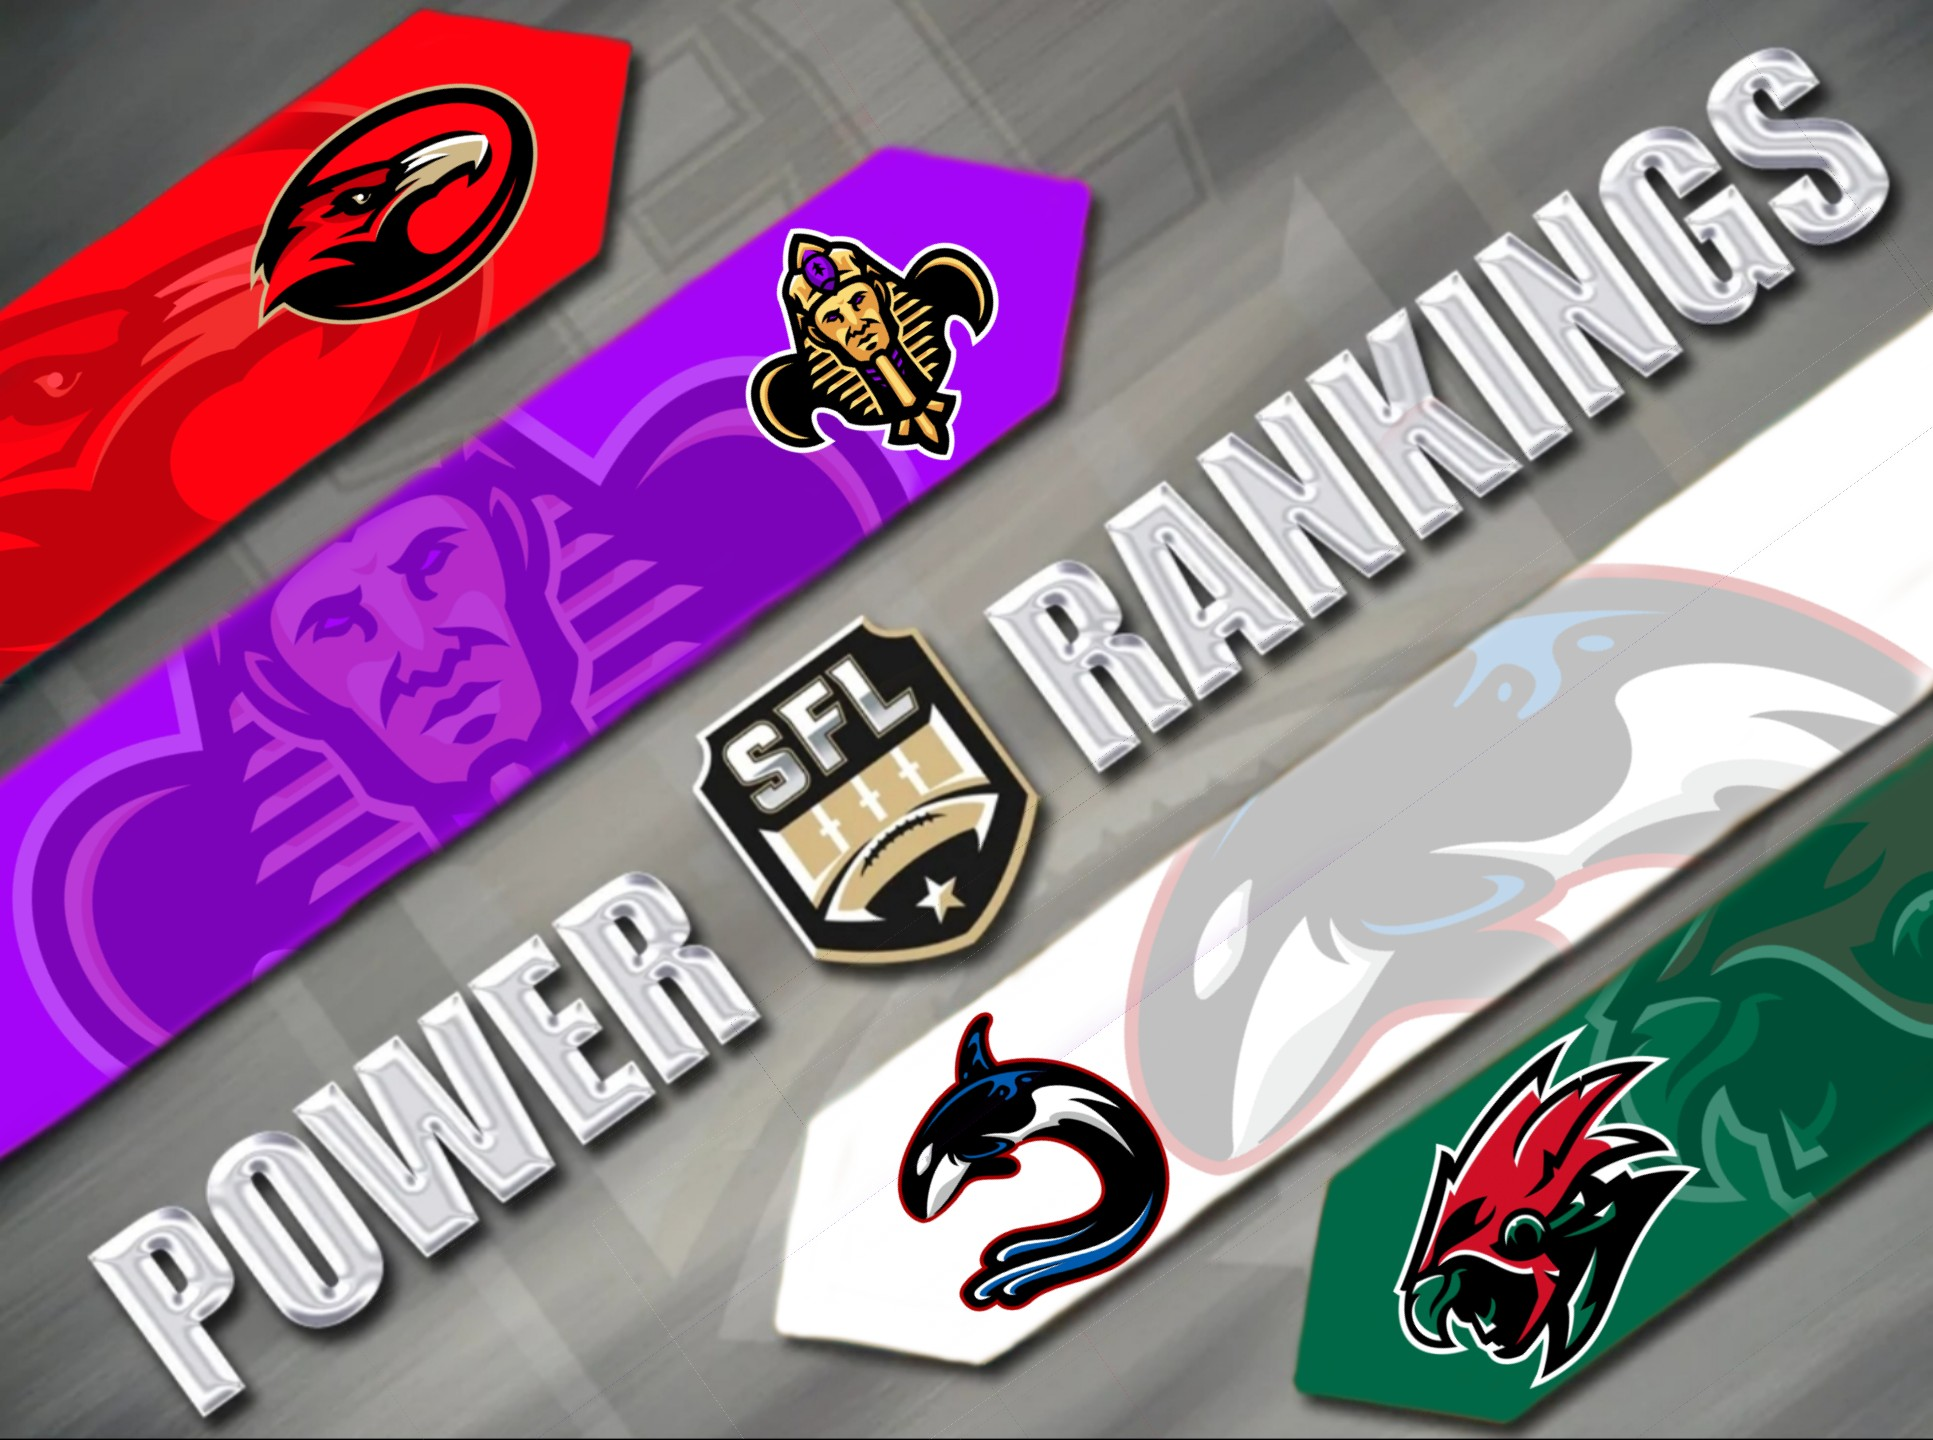 Season 14 Power Rankings: Week 8